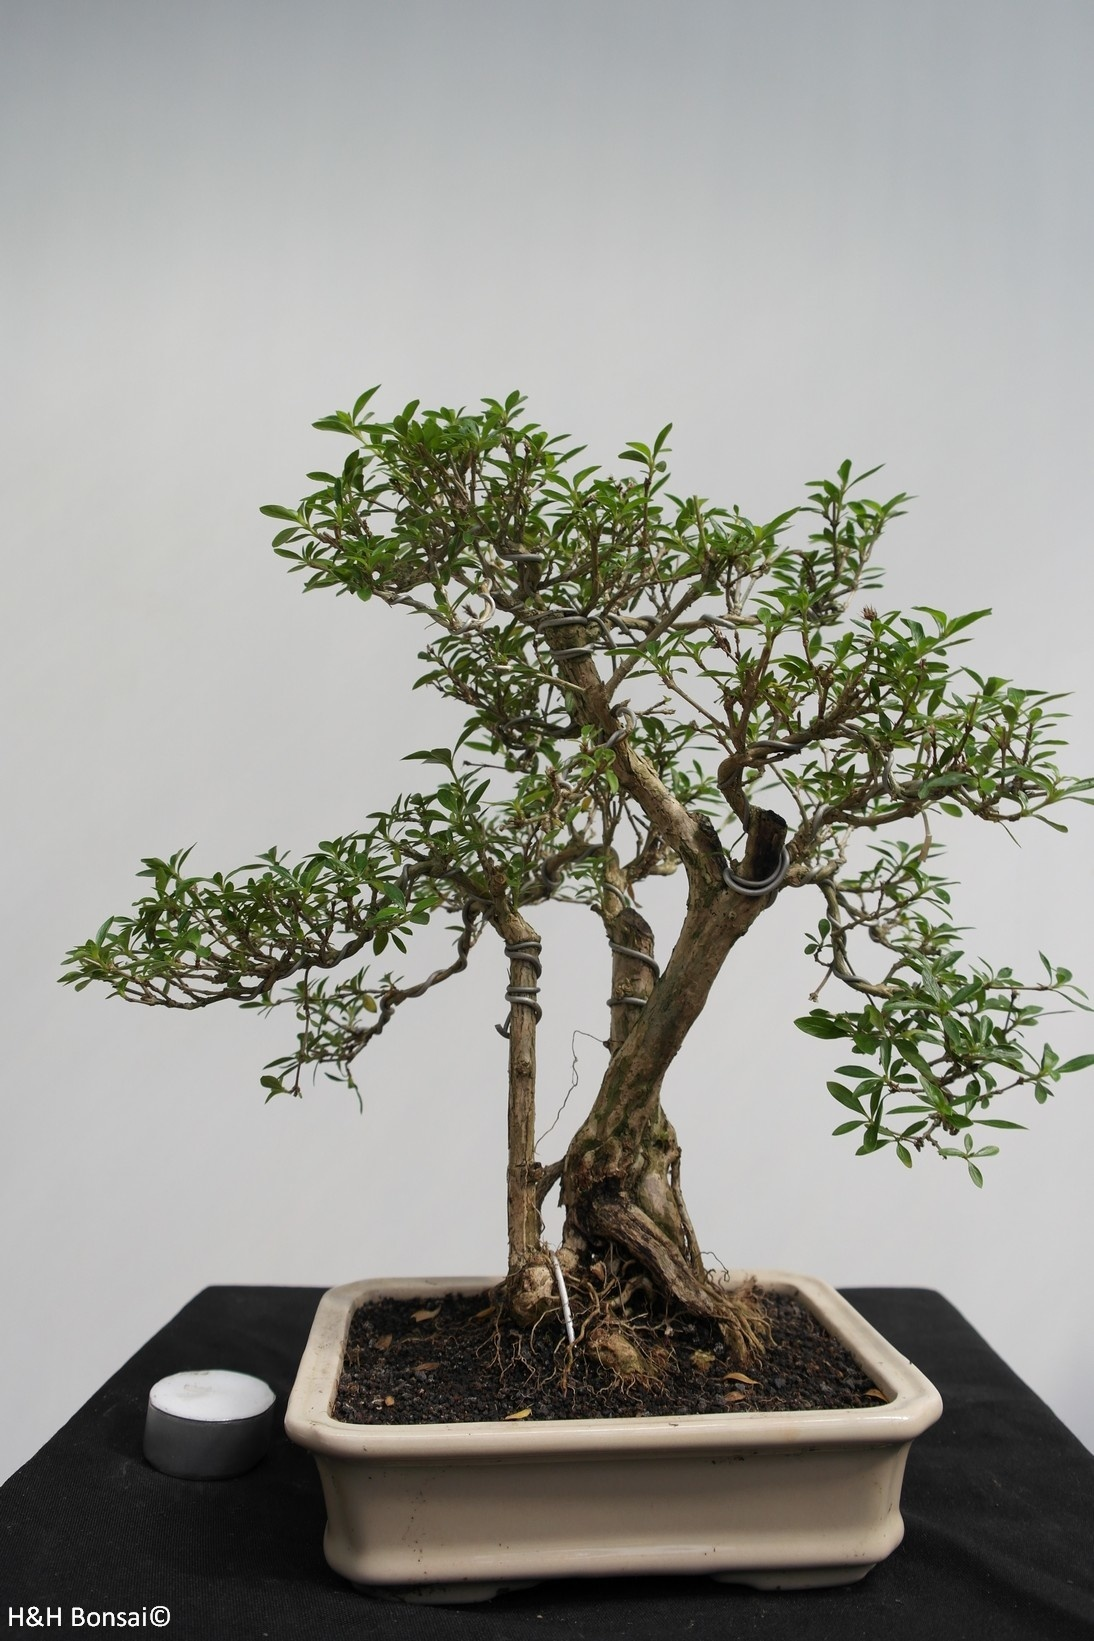 Bonsai Snow Rose, Serissa foetida, no. 7862